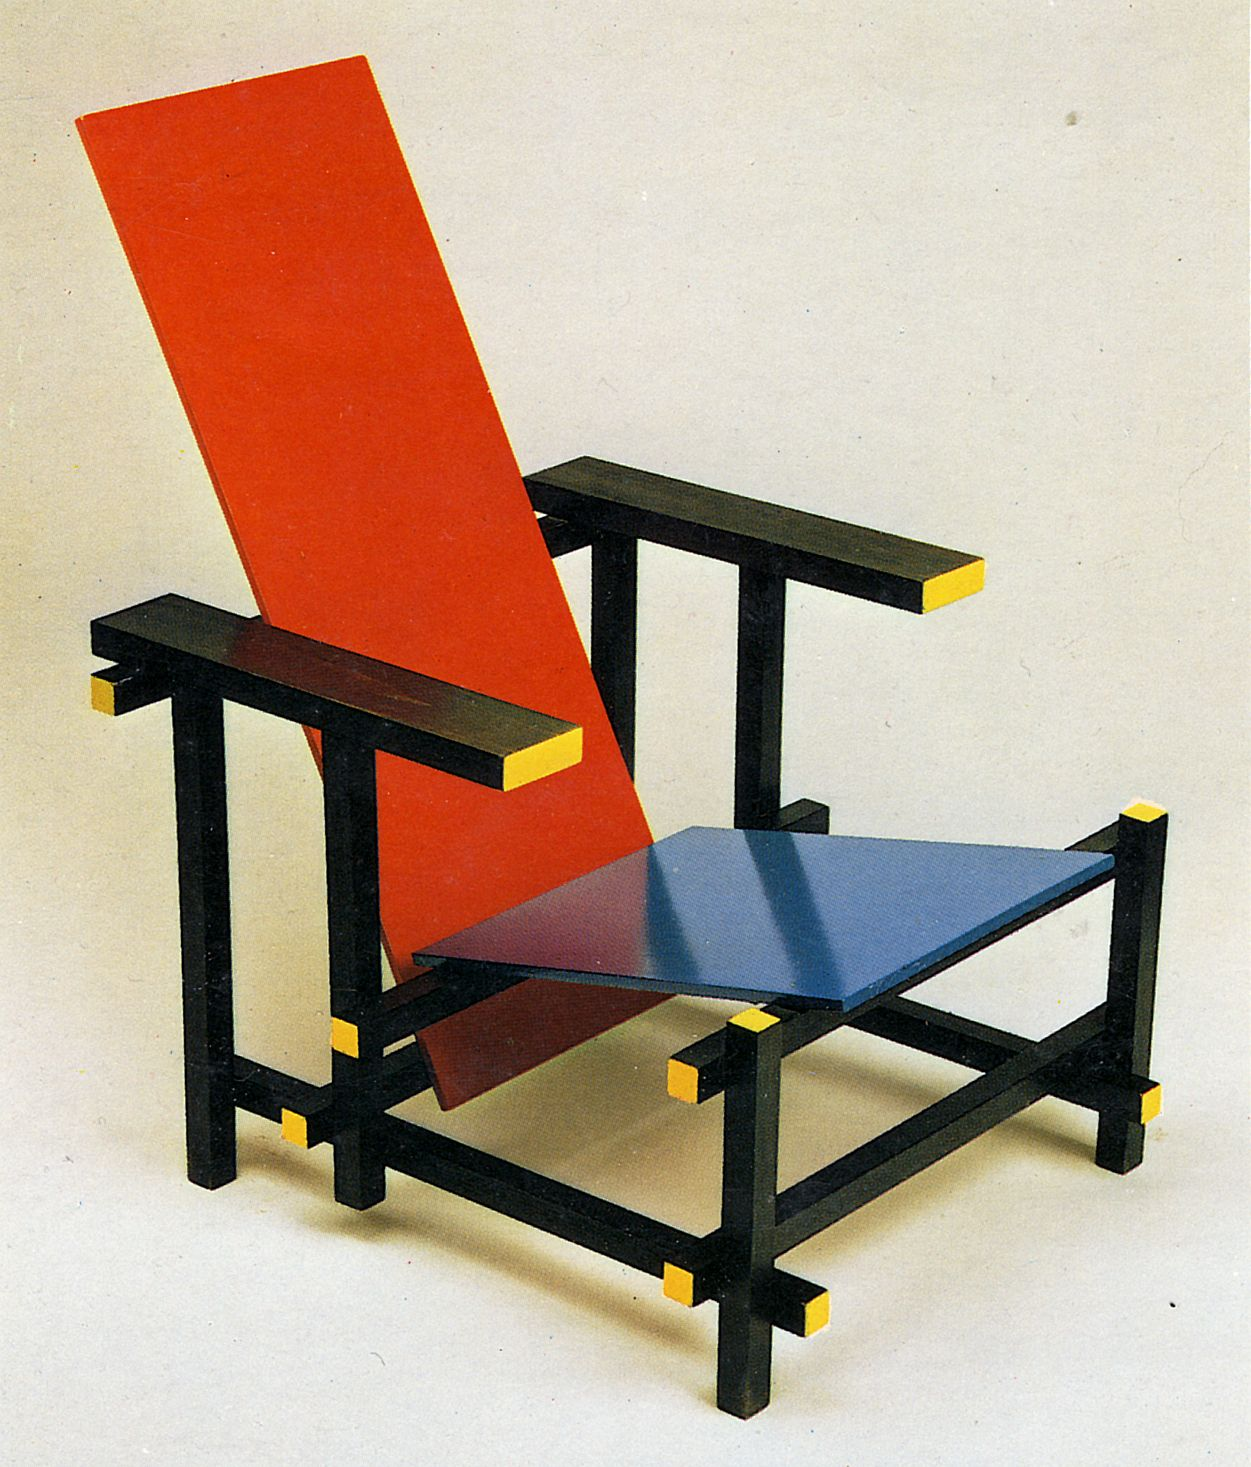 Rietveld chaise bleue et rouge (5)  Chaise bleu, Design, Chaise